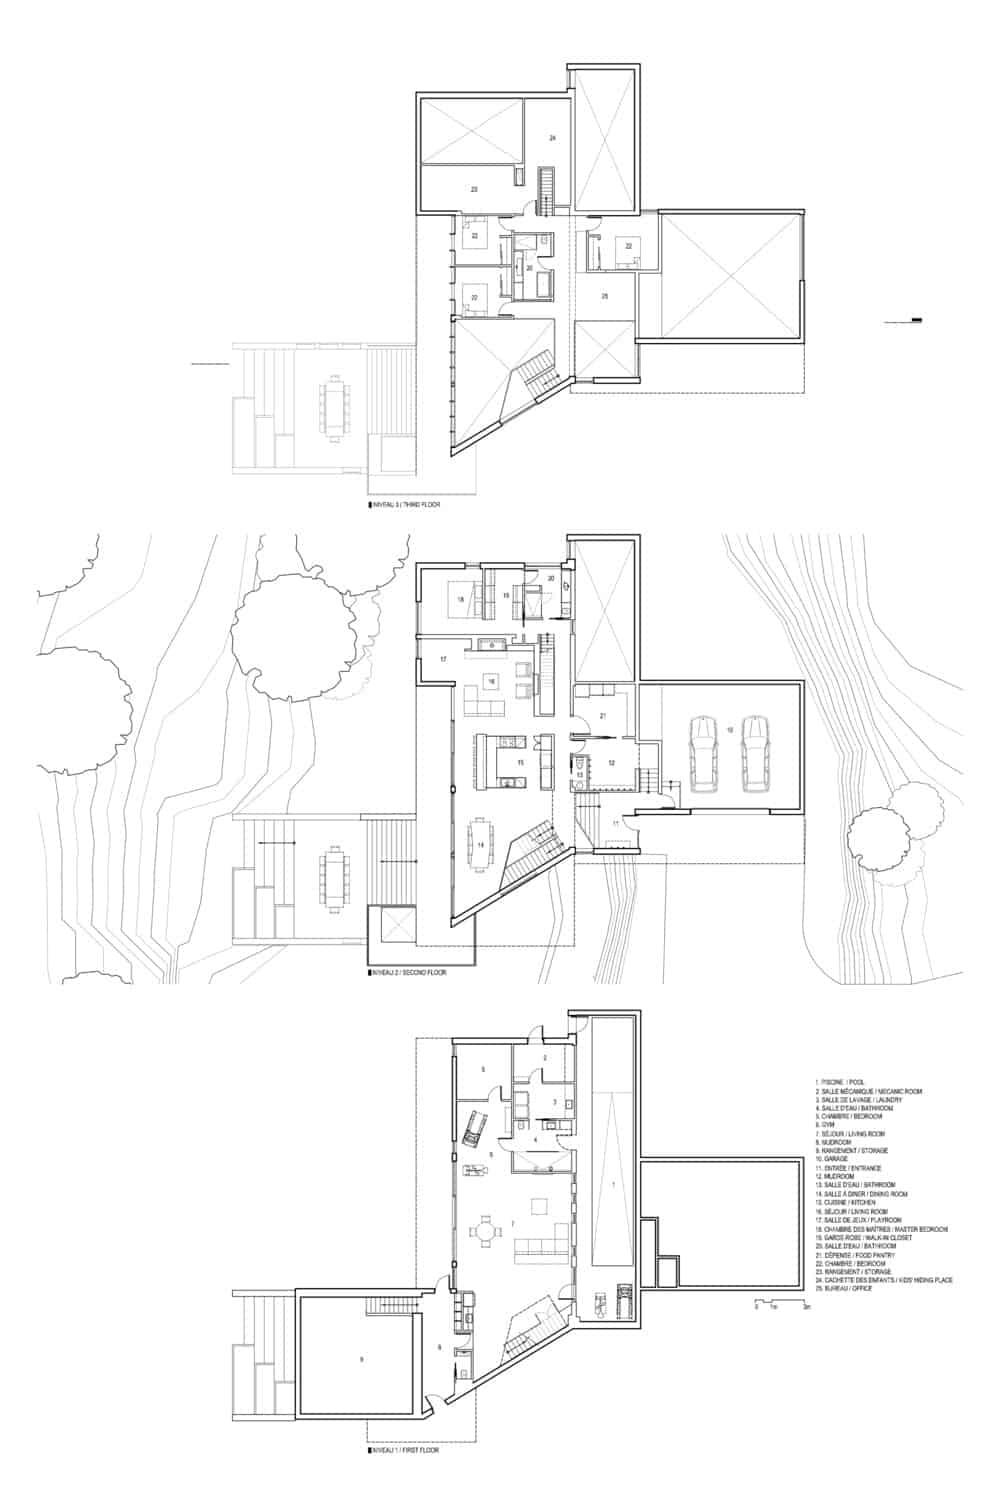 Full plan of the house. Photo credit: Bourgeois Lechasseur architects